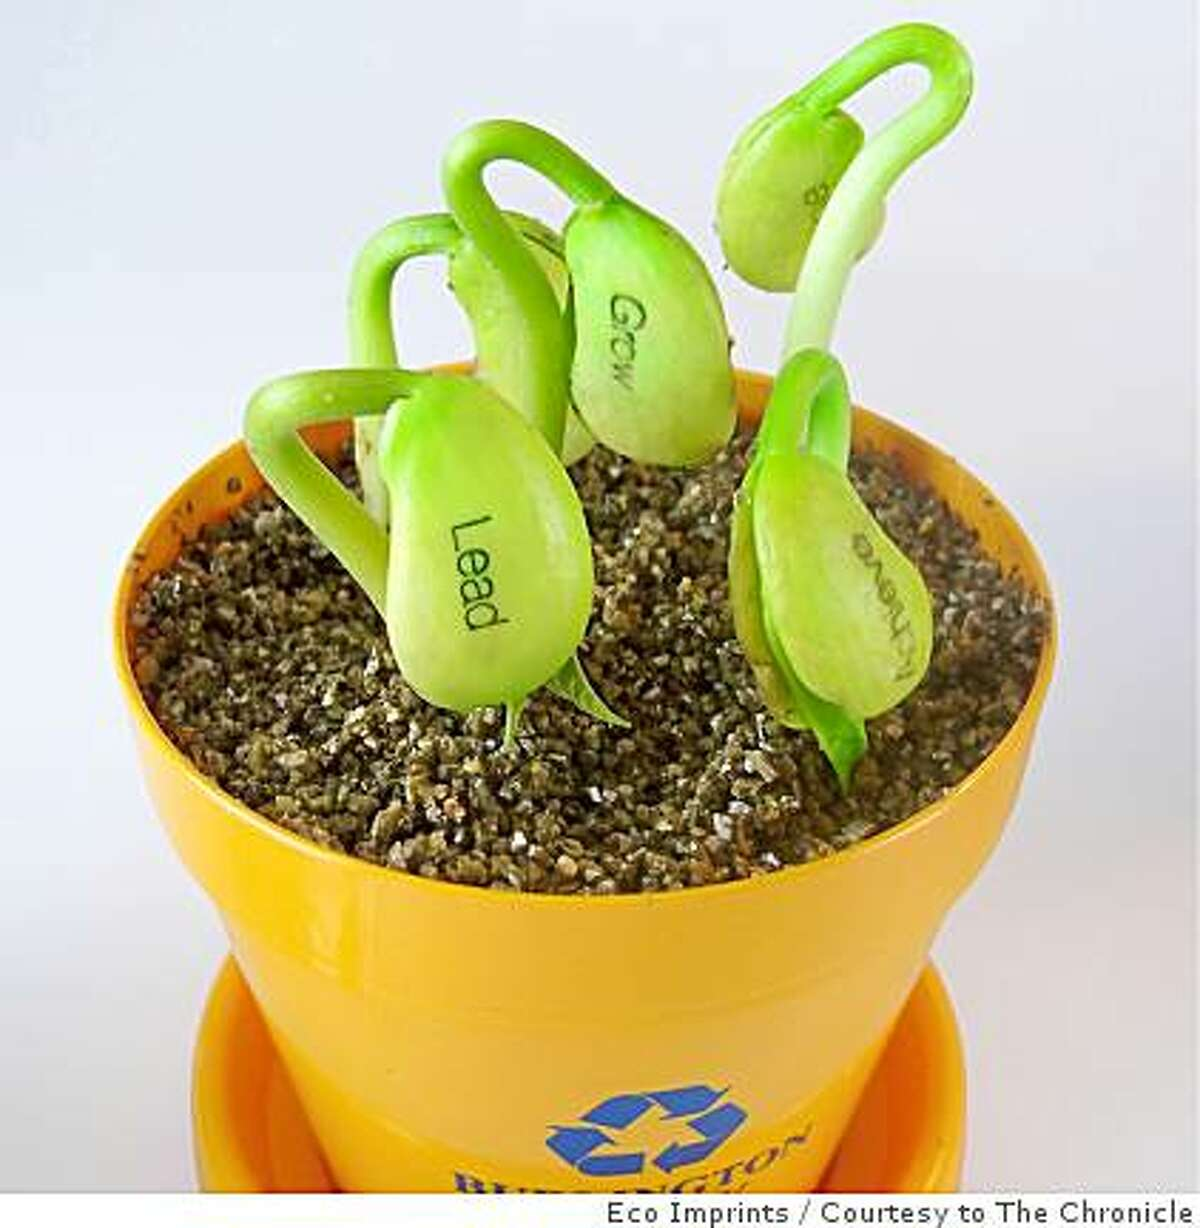 These bean seedlings with corporate logos are among the